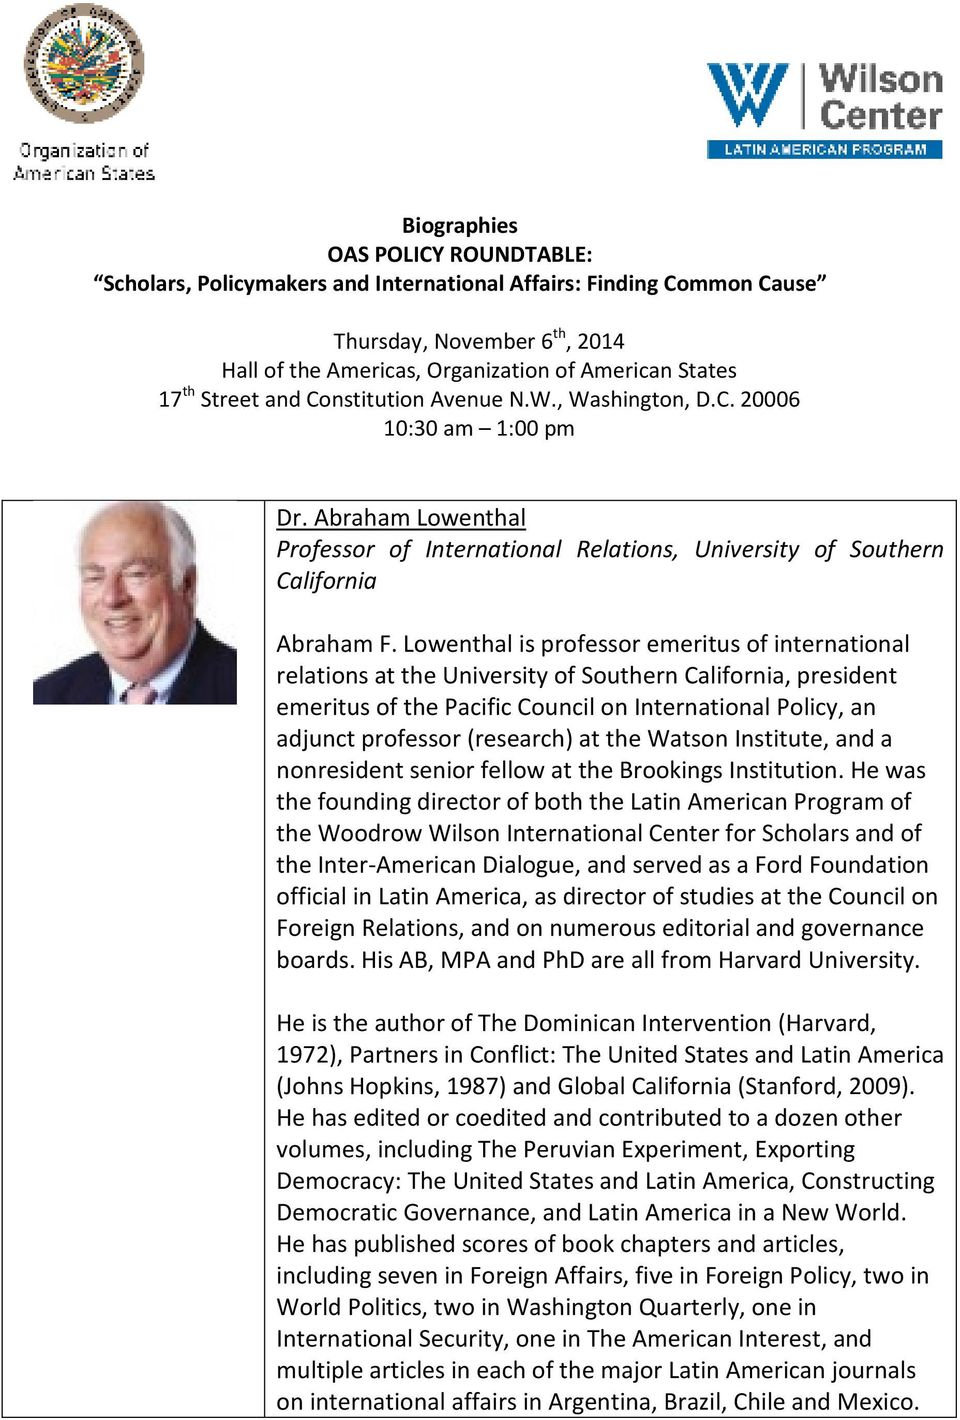 Lowenthal is professor emeritus of international relations at the University of Southern California, president emeritus of the Pacific Council on International Policy, an adjunct professor (research)